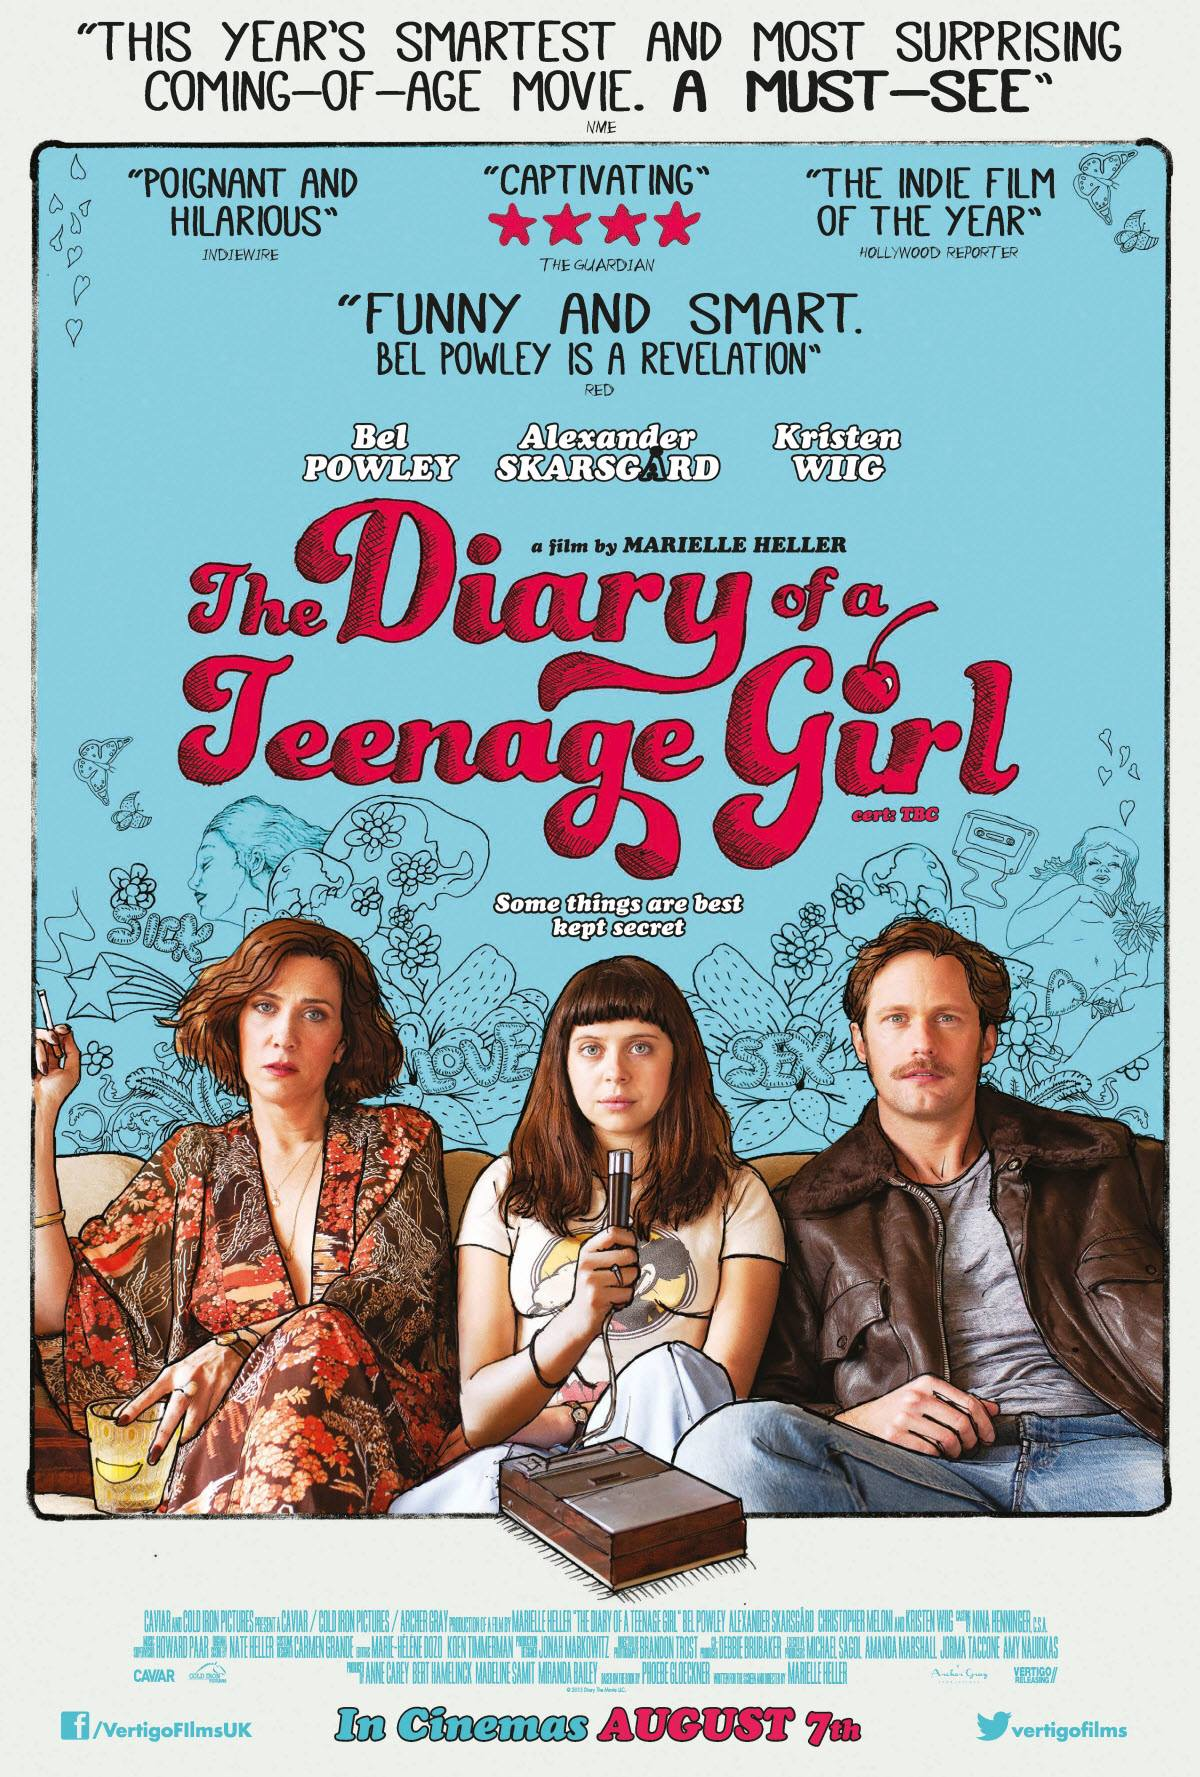 THE DIARY OF A TEENAGE GIRL-Poster-23Junho2015-02